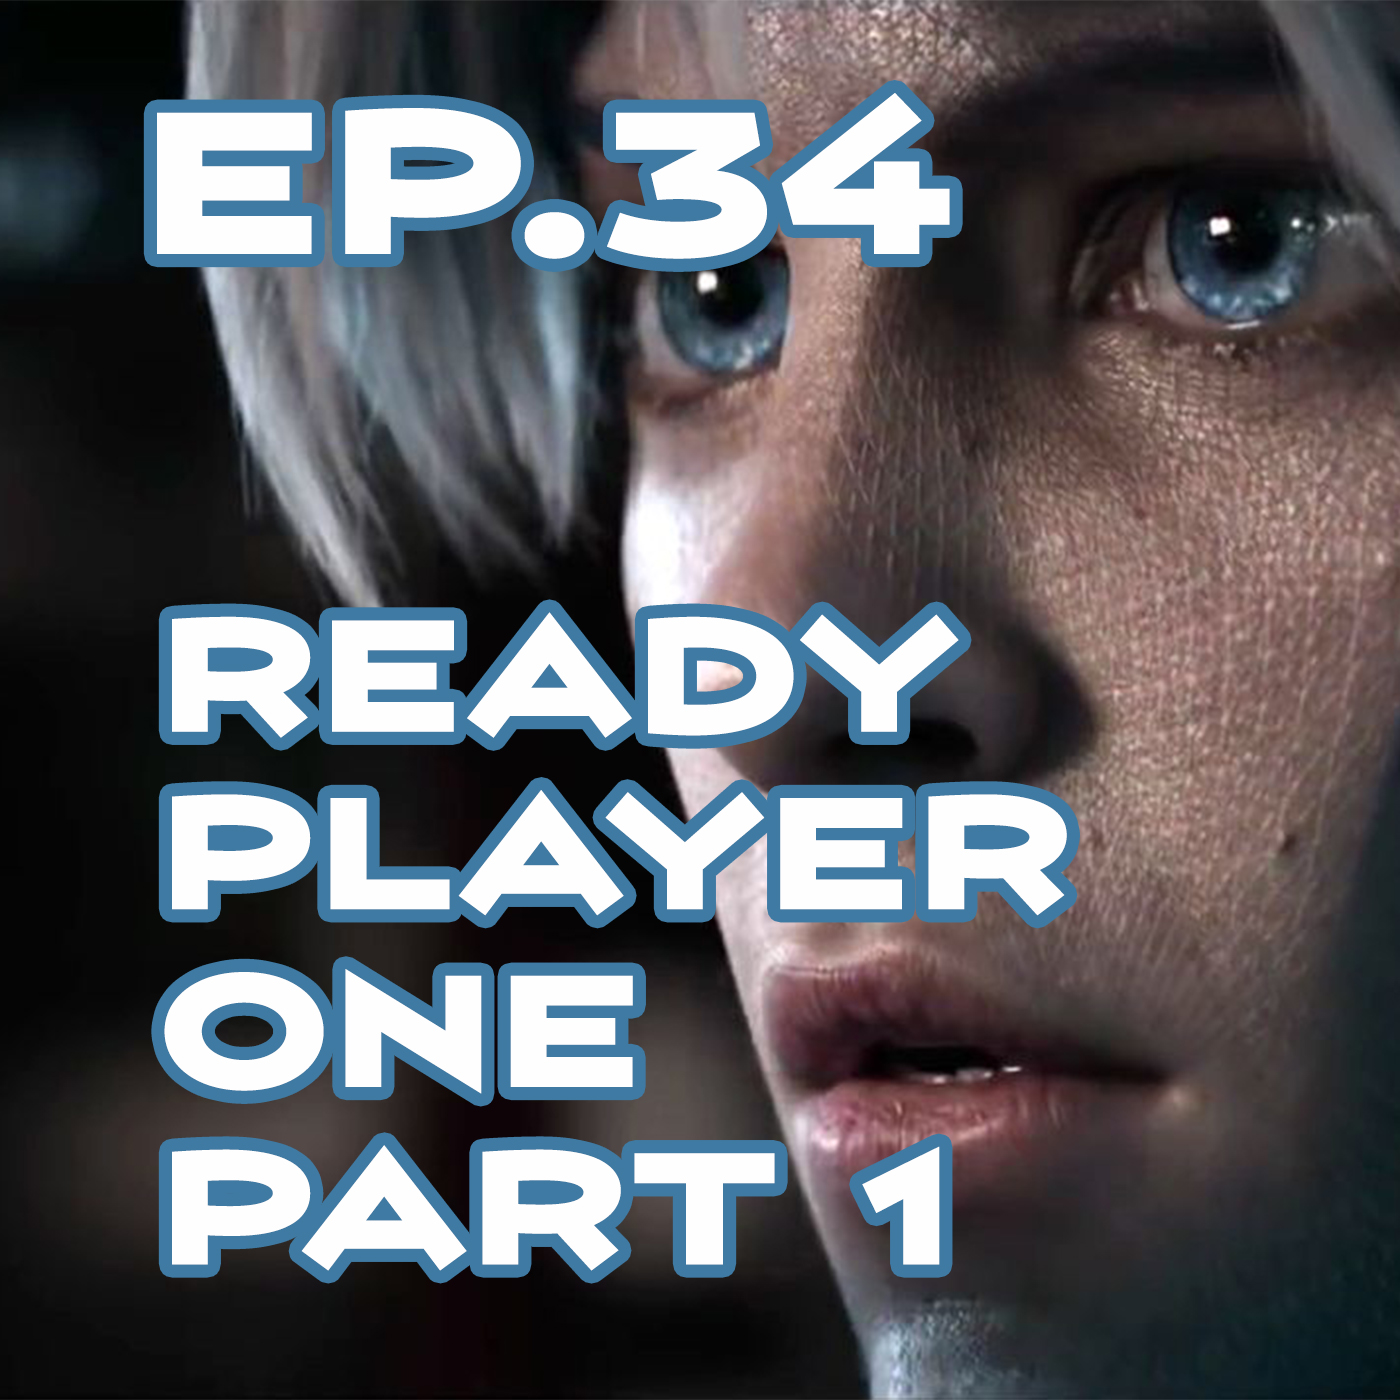 Ep. 34 - 'Ready Player One' Review, Part 1